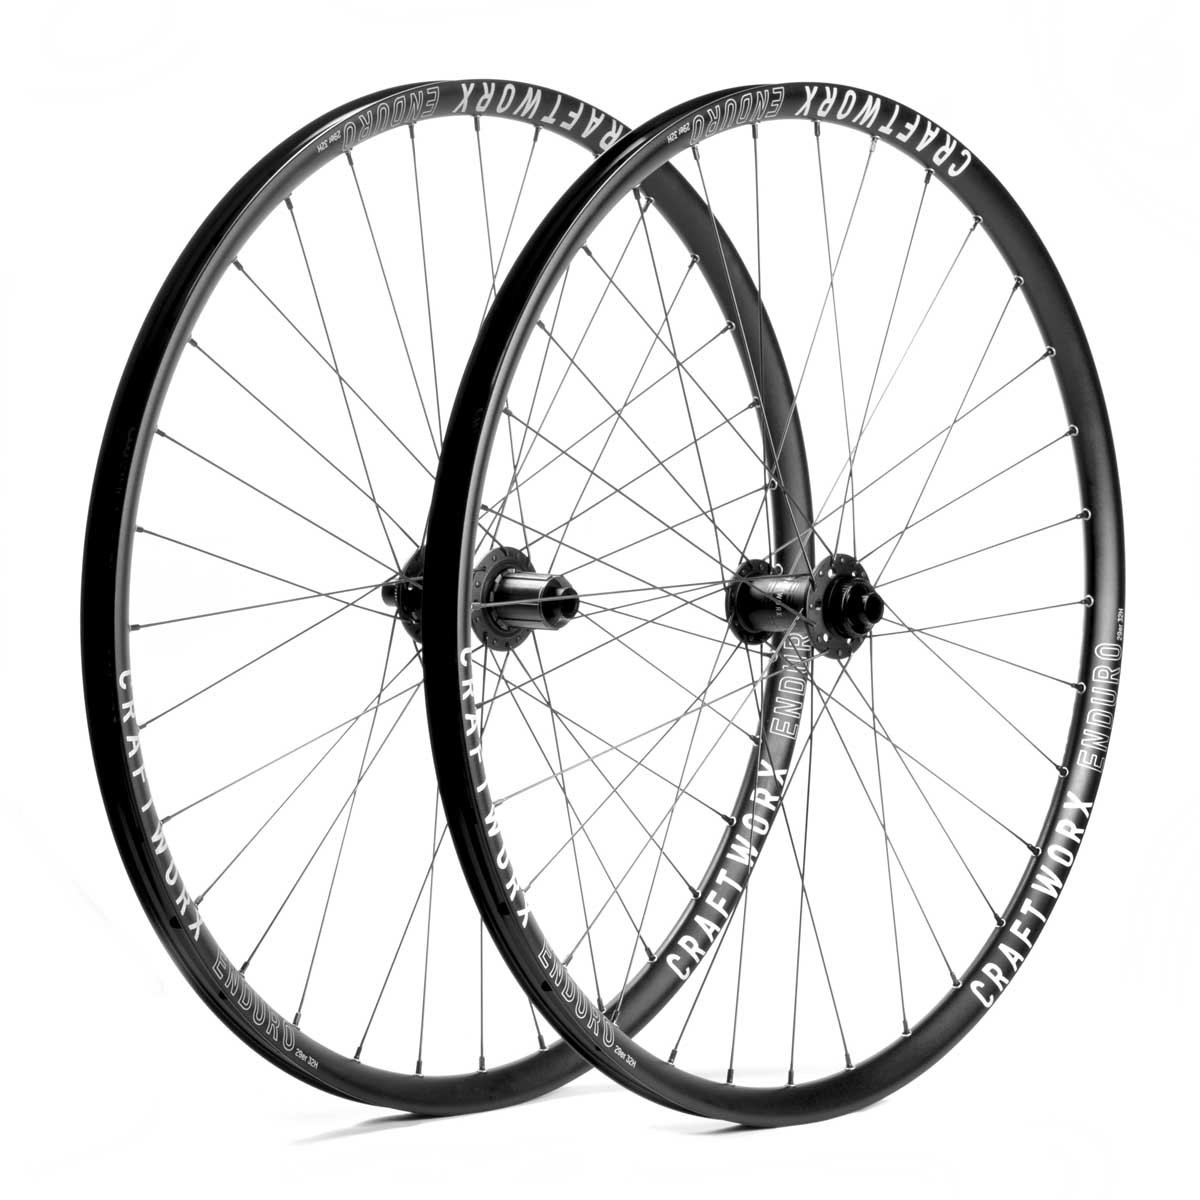 1200x1200 Craftworx Enduro Mountain Bike Wheels Internal